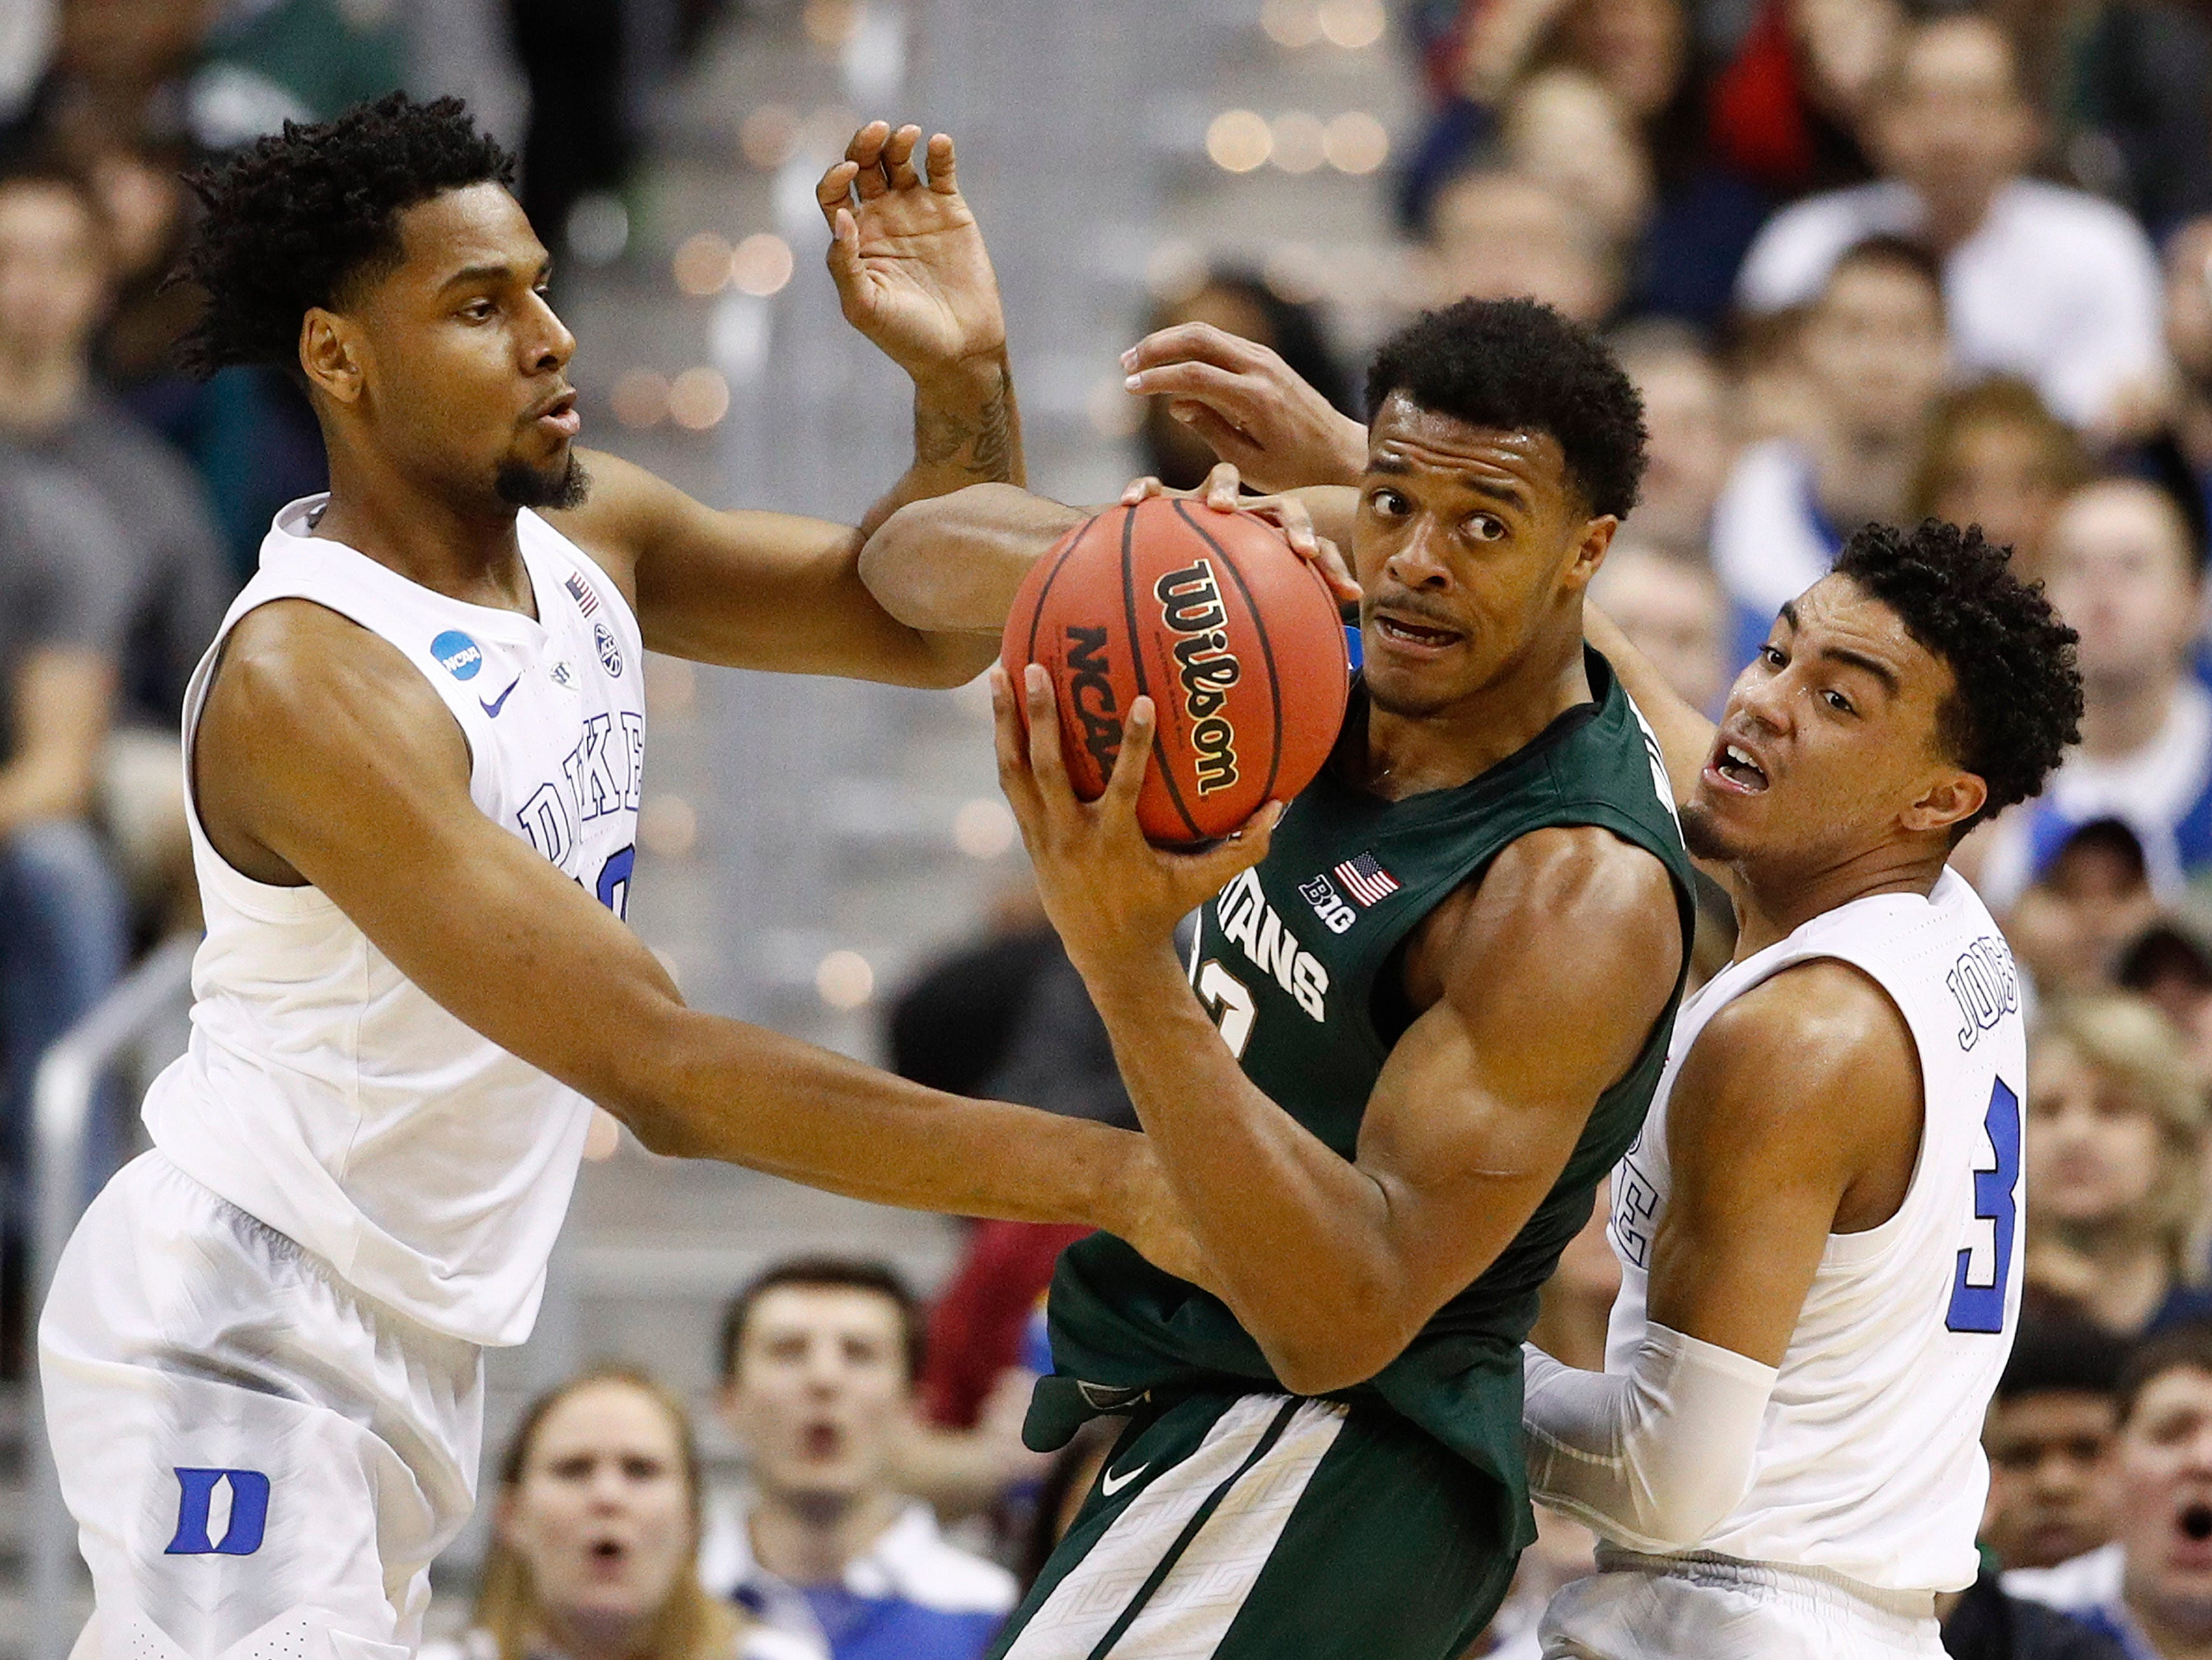 Michigan State forward Xavier Tillman (23) looks to pass the ball as he is covered by Duke center Marques Bolden (20) guard Tre Jones (3) during the first half of an NCAA men's East Regional final college basketball game in Washington, Sunday, March 31, 2019.